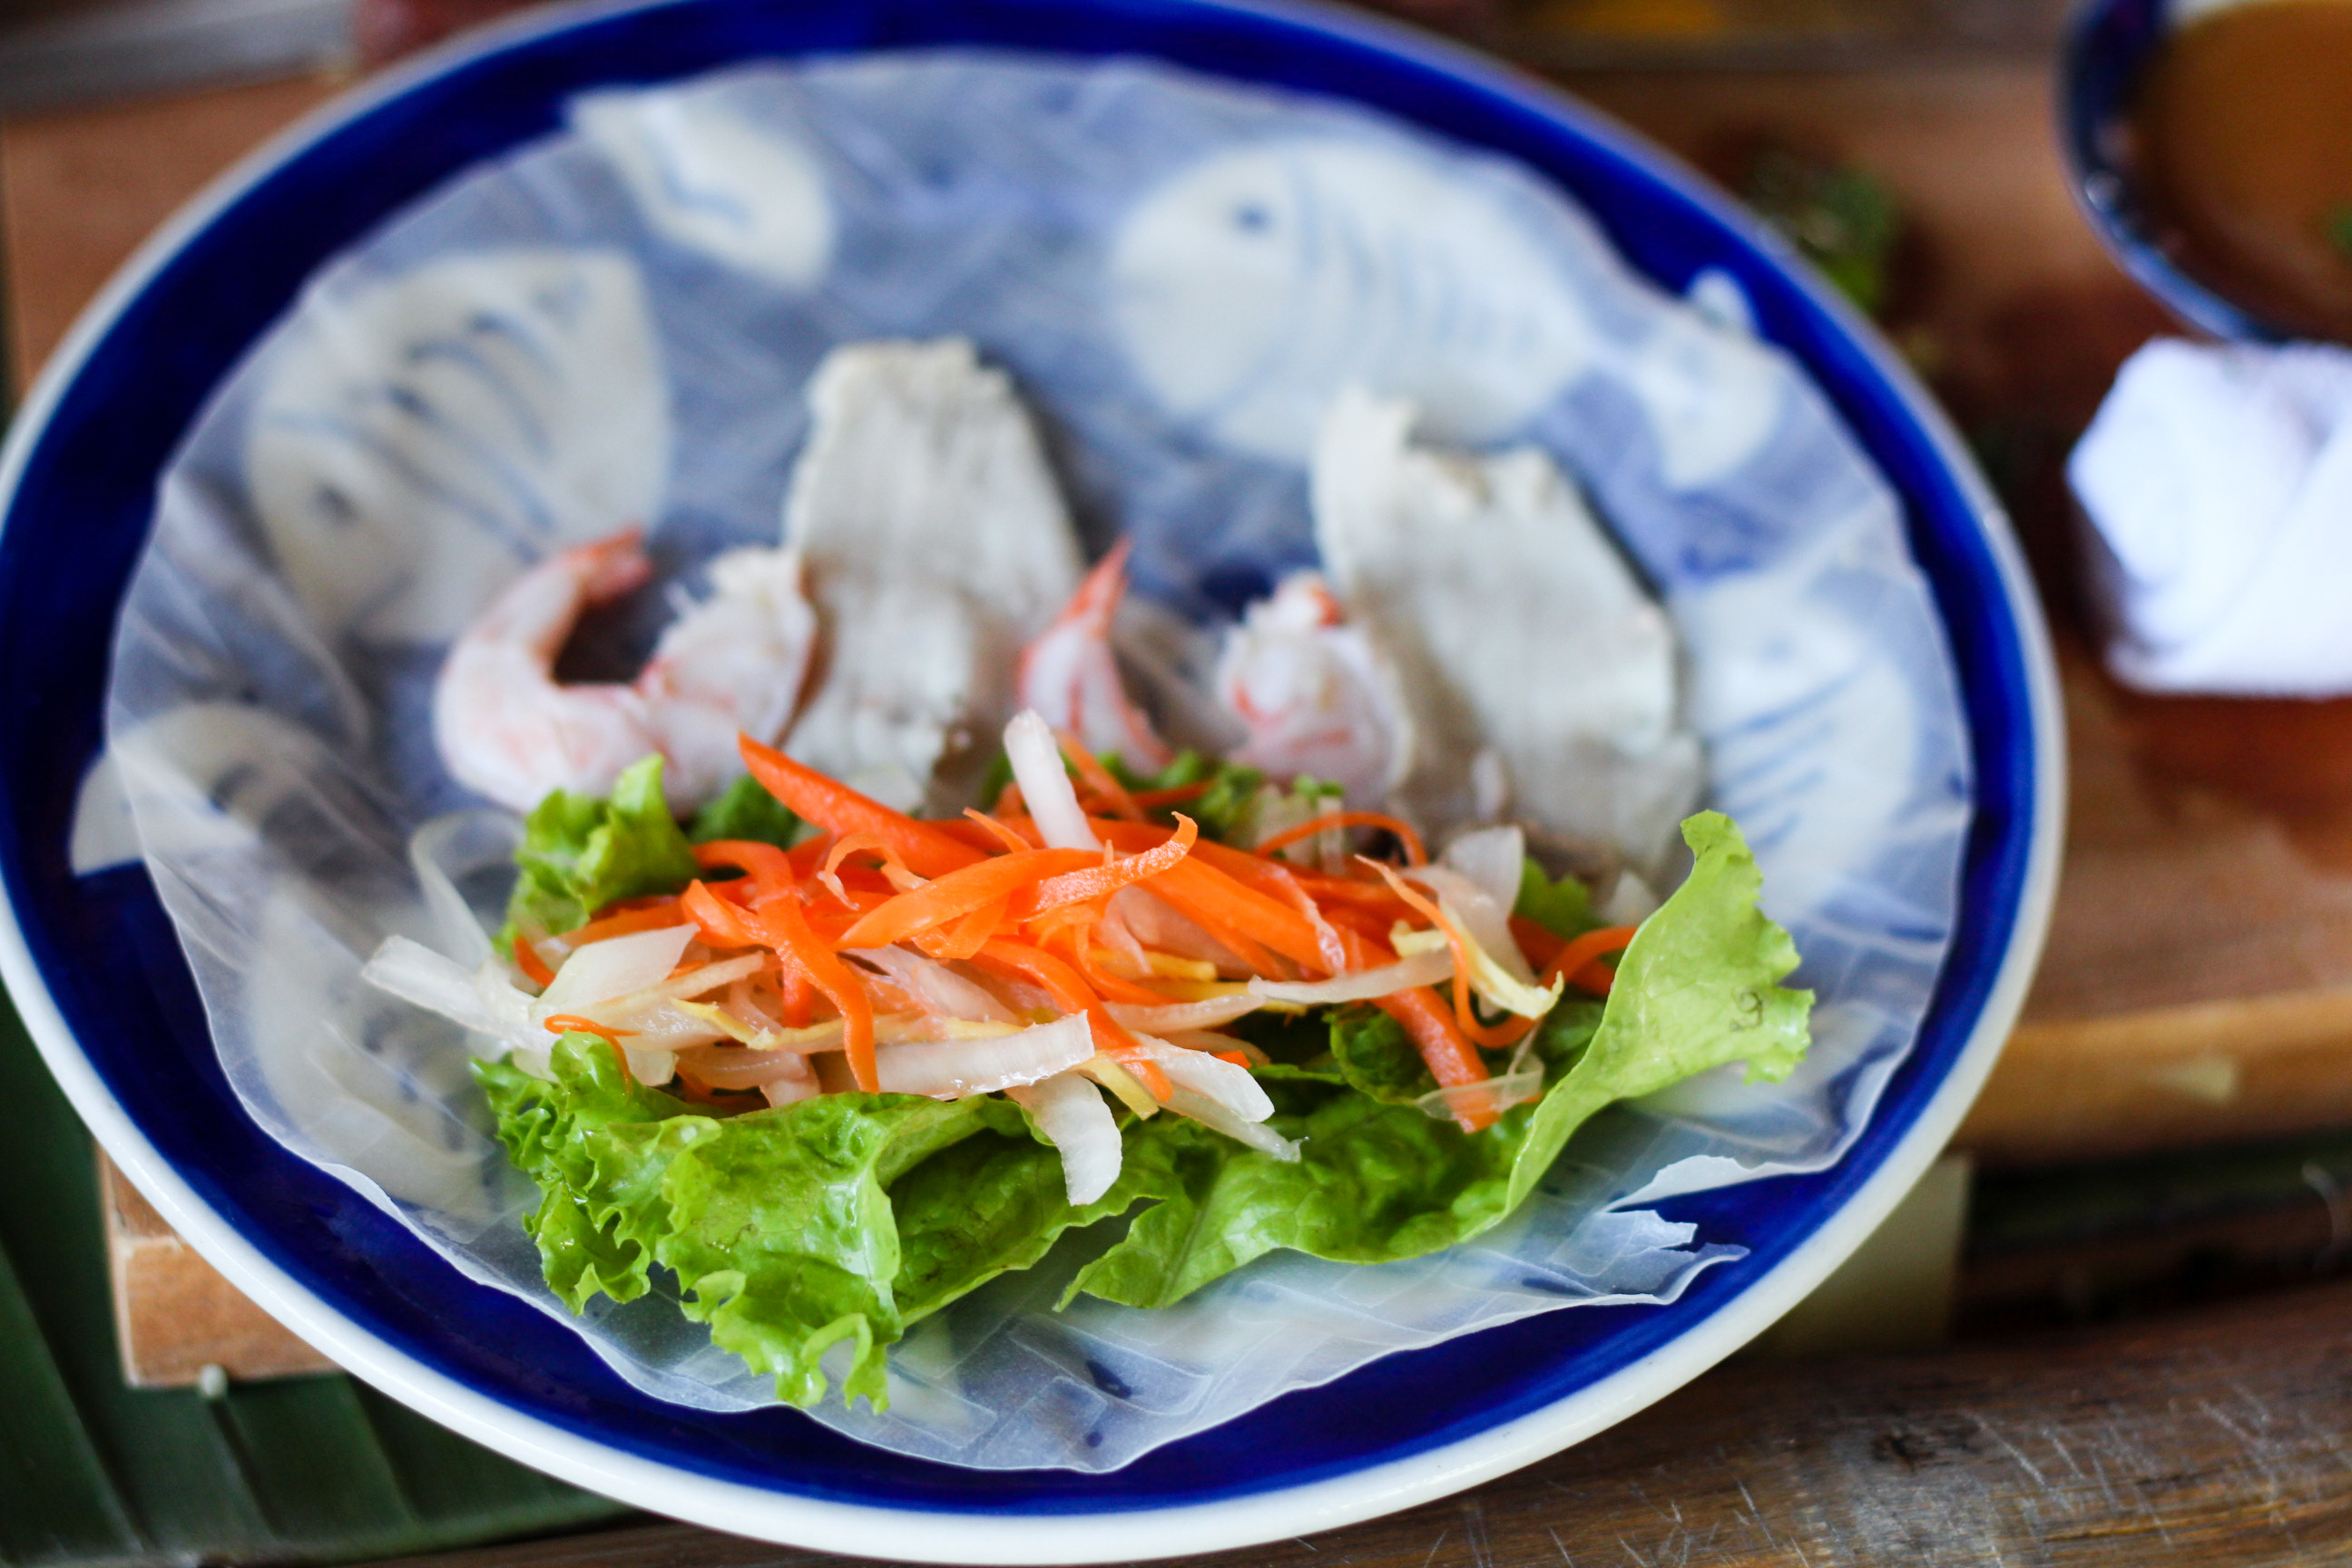 Hoi An Eco Coconut Tour - Fresh Spring Rolls | Alyssa & Carla